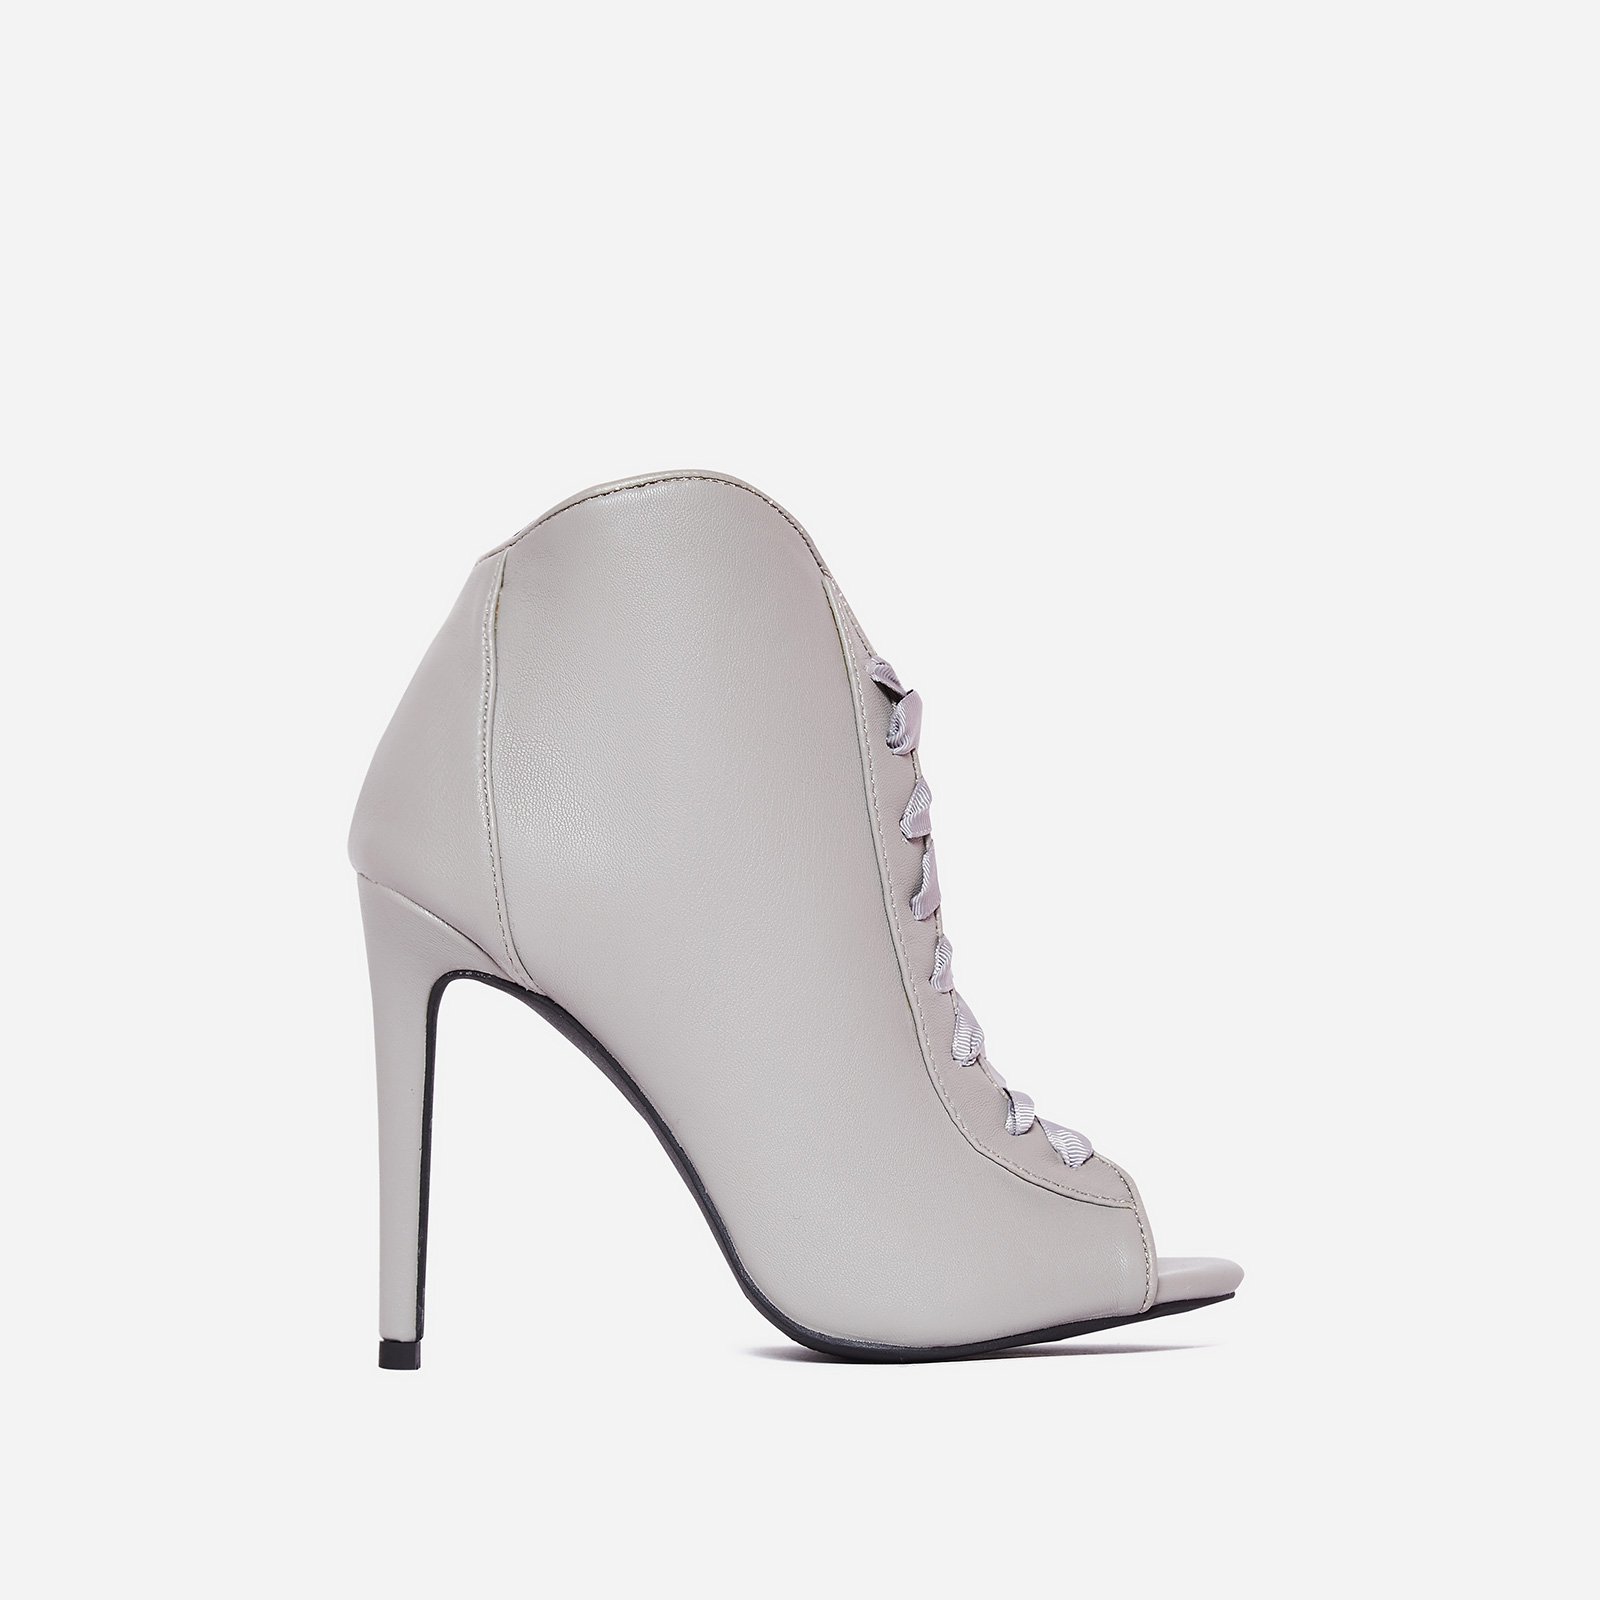 Klara Peep Toe Lace Up Ankle Boot In Grey Faux Leather